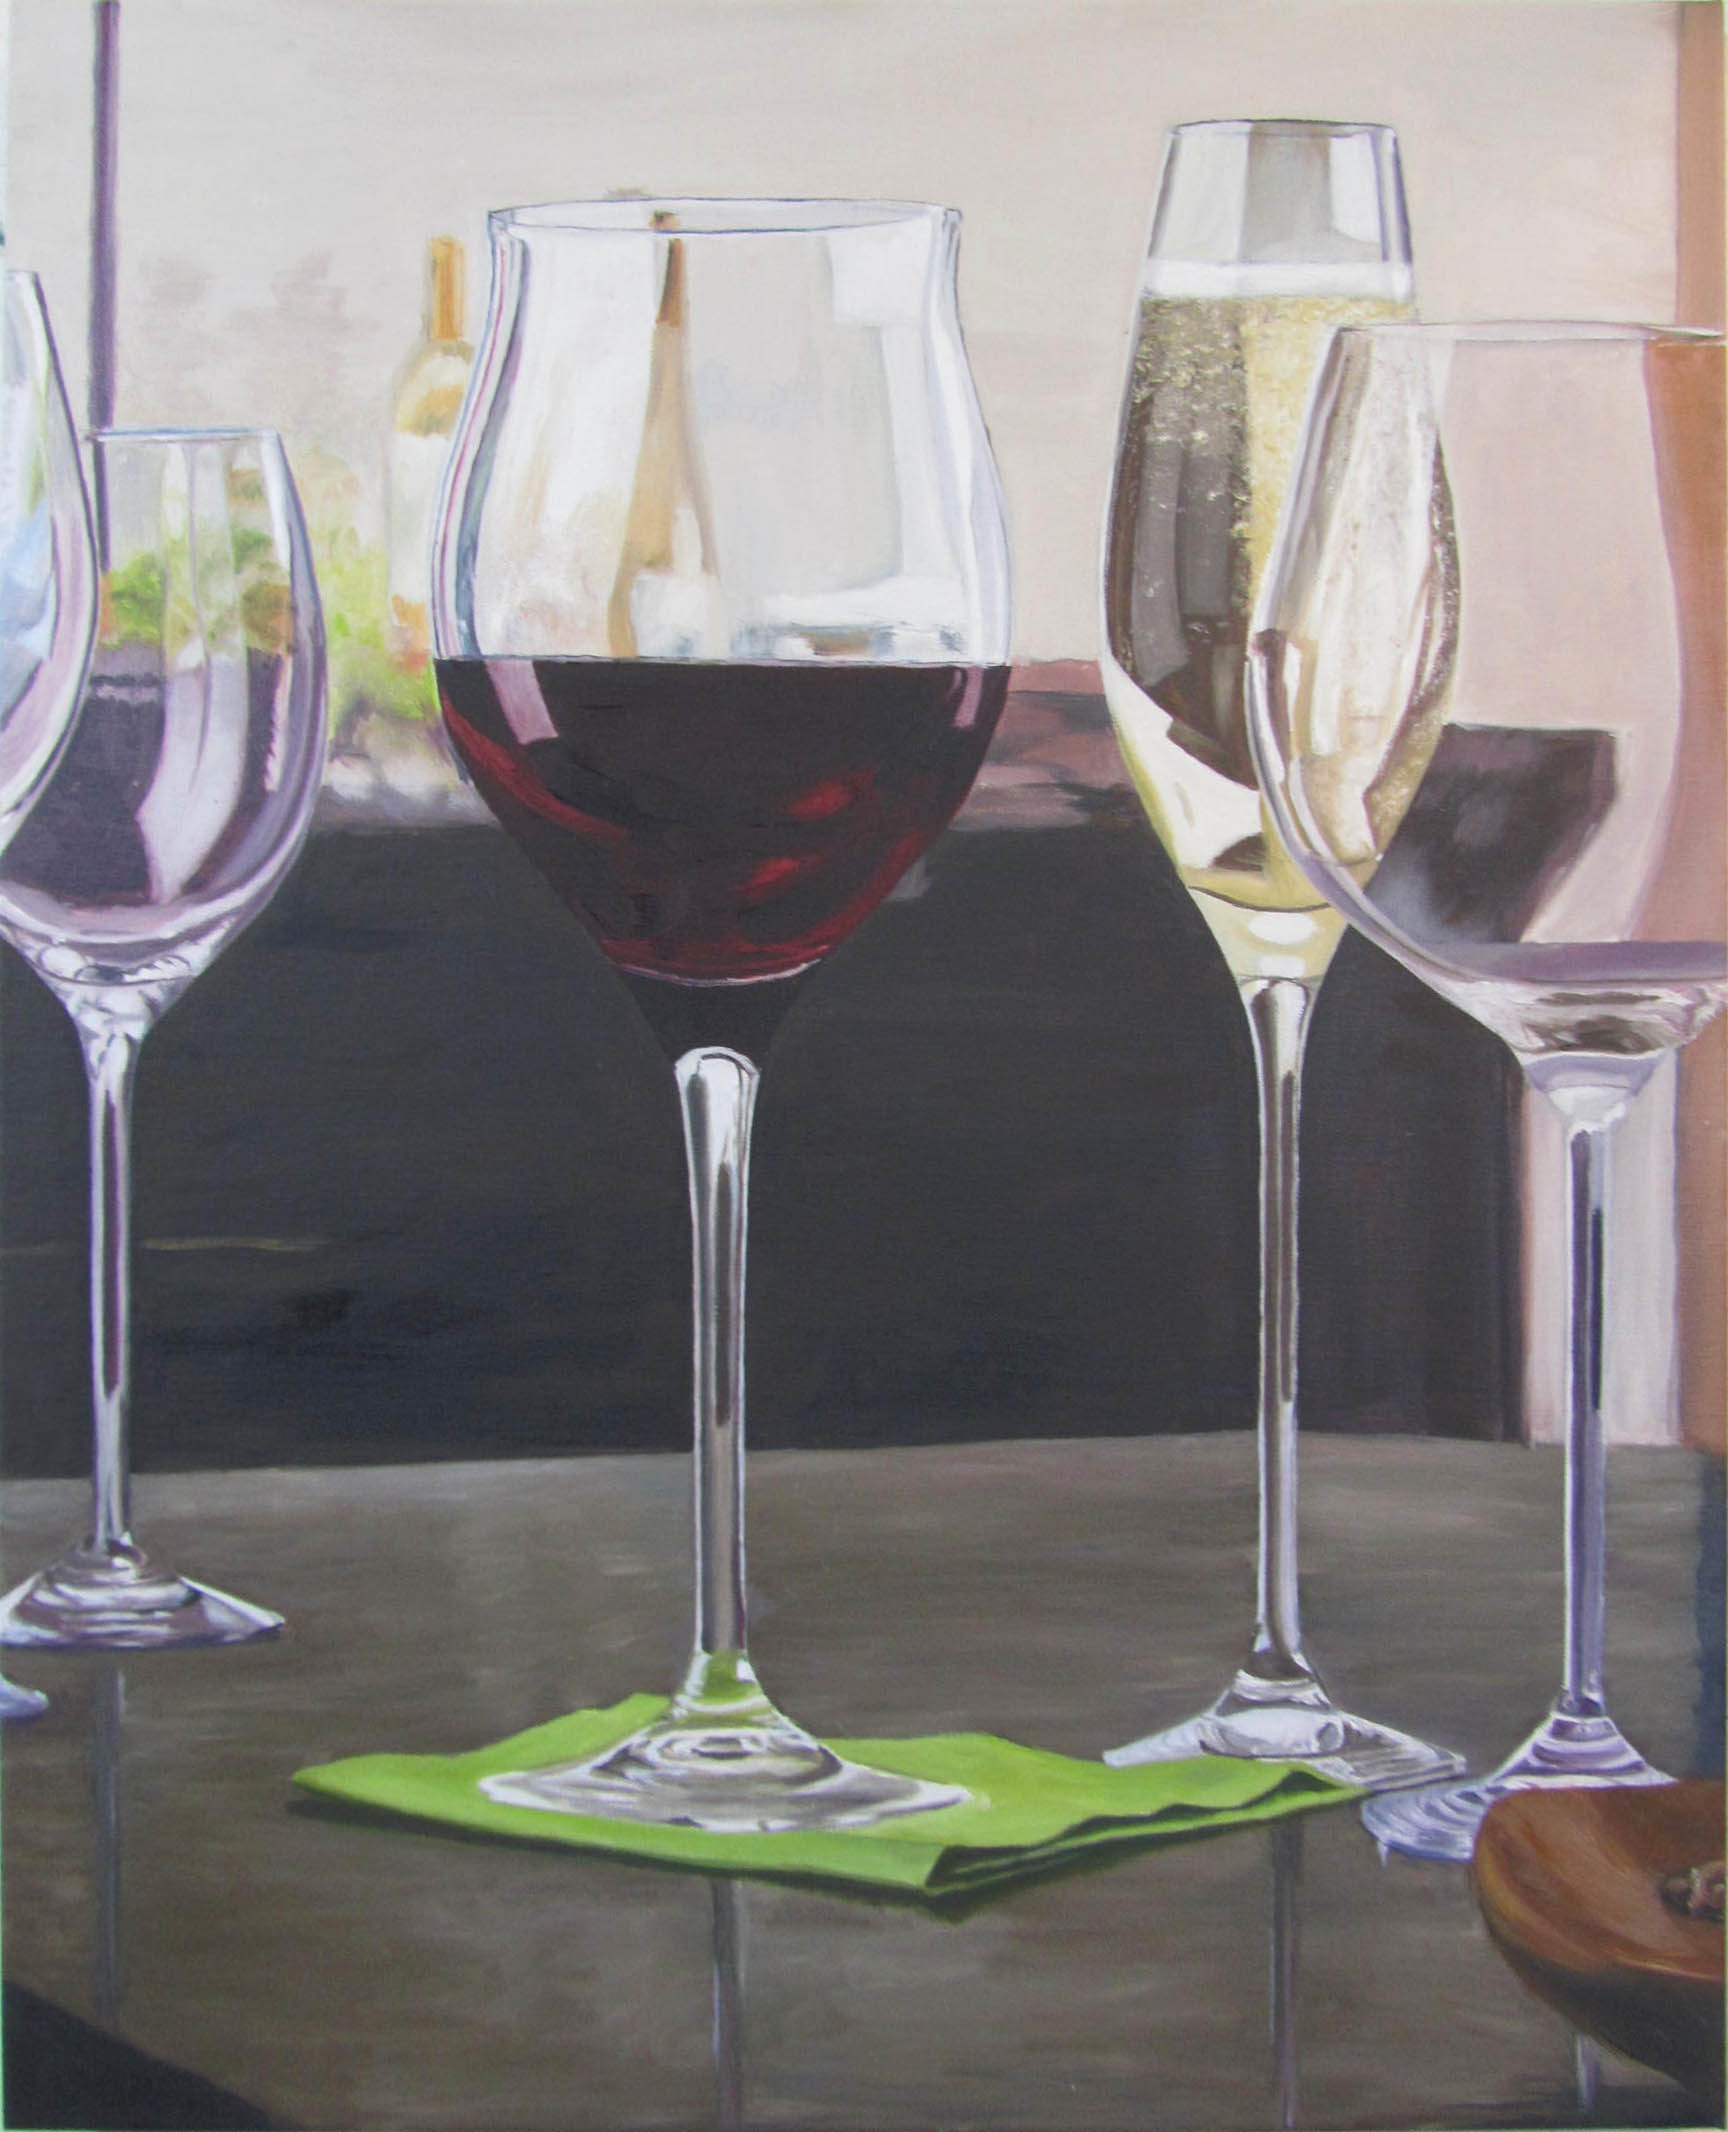 "Wine Glasses Still Life  oil on canvass; 30"" x 24""; 2013  sold  This was a study in how light hits glass and liquid."